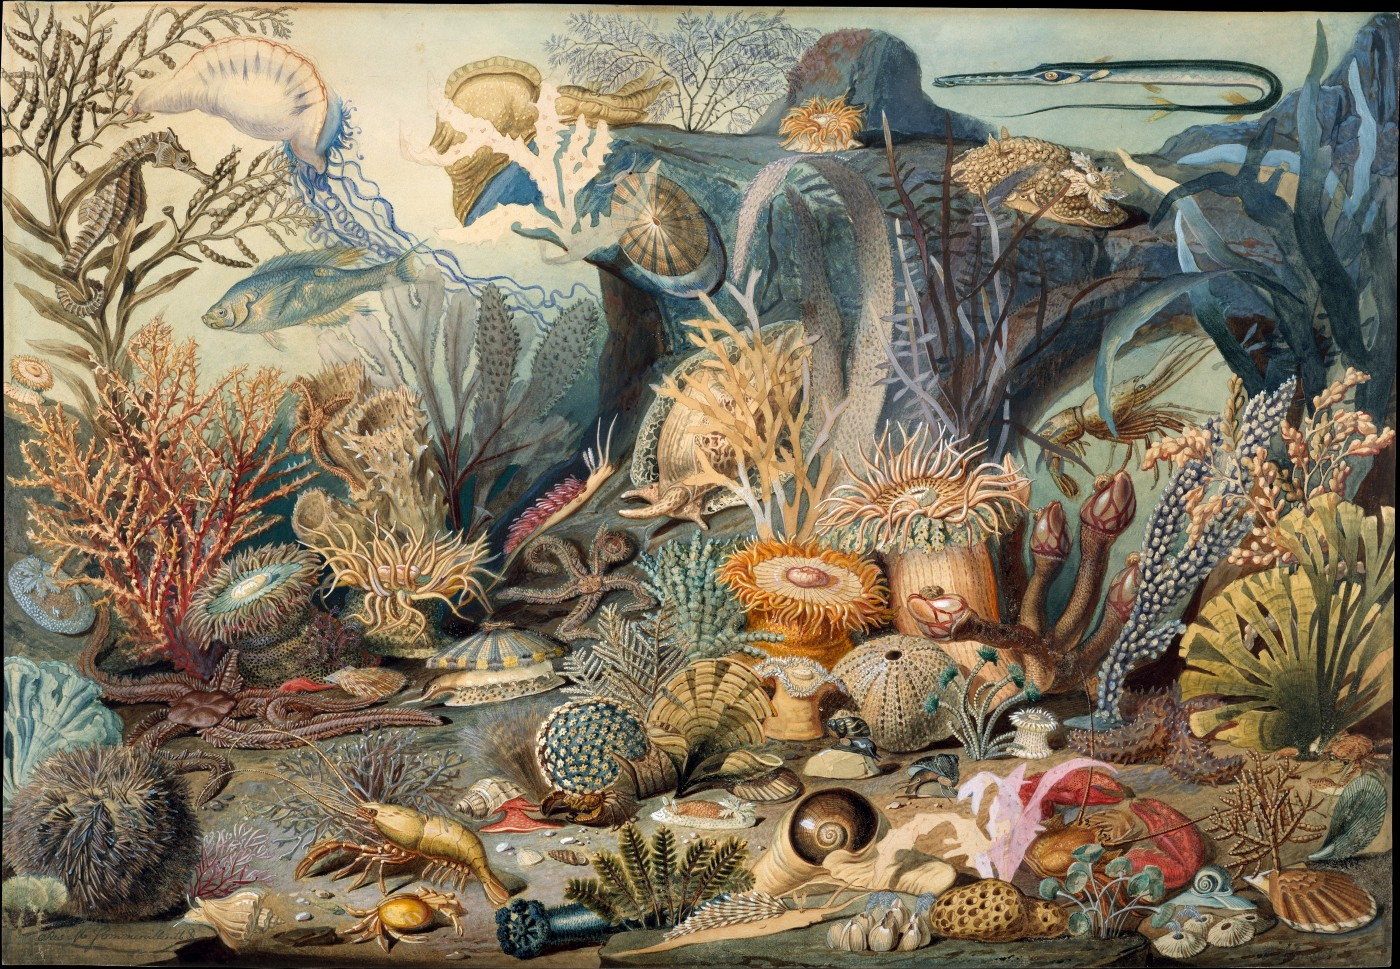 One of the earliest American submarine illustrations; Ocean Life—James M. Sommerville. He collected the specimens and lithographed the image.